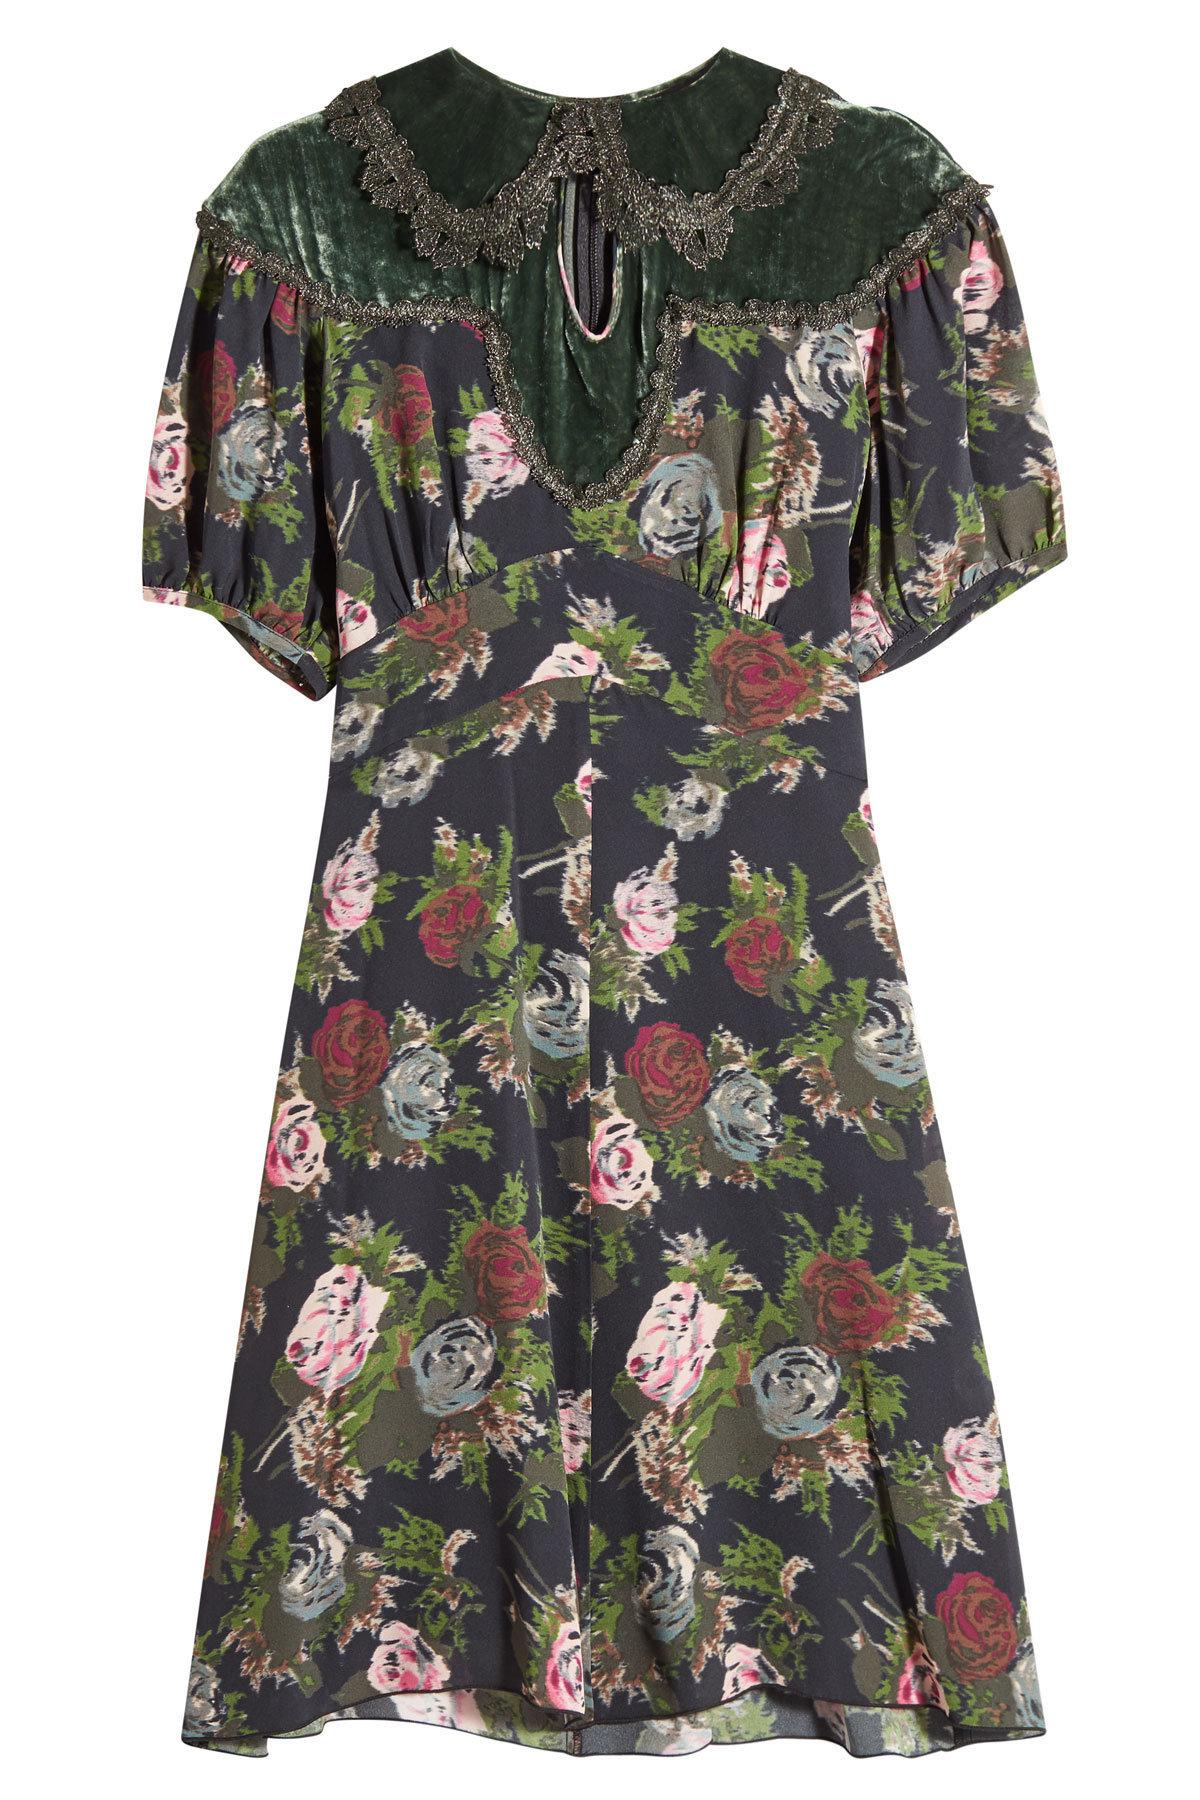 Outlet 2018 New Anna Sui Woman Cutout Velvet-paneled Floral-print Silk Dress Dark Green Size 10 Anna Sui Buy Cheap Store cNmbG1Pd0v